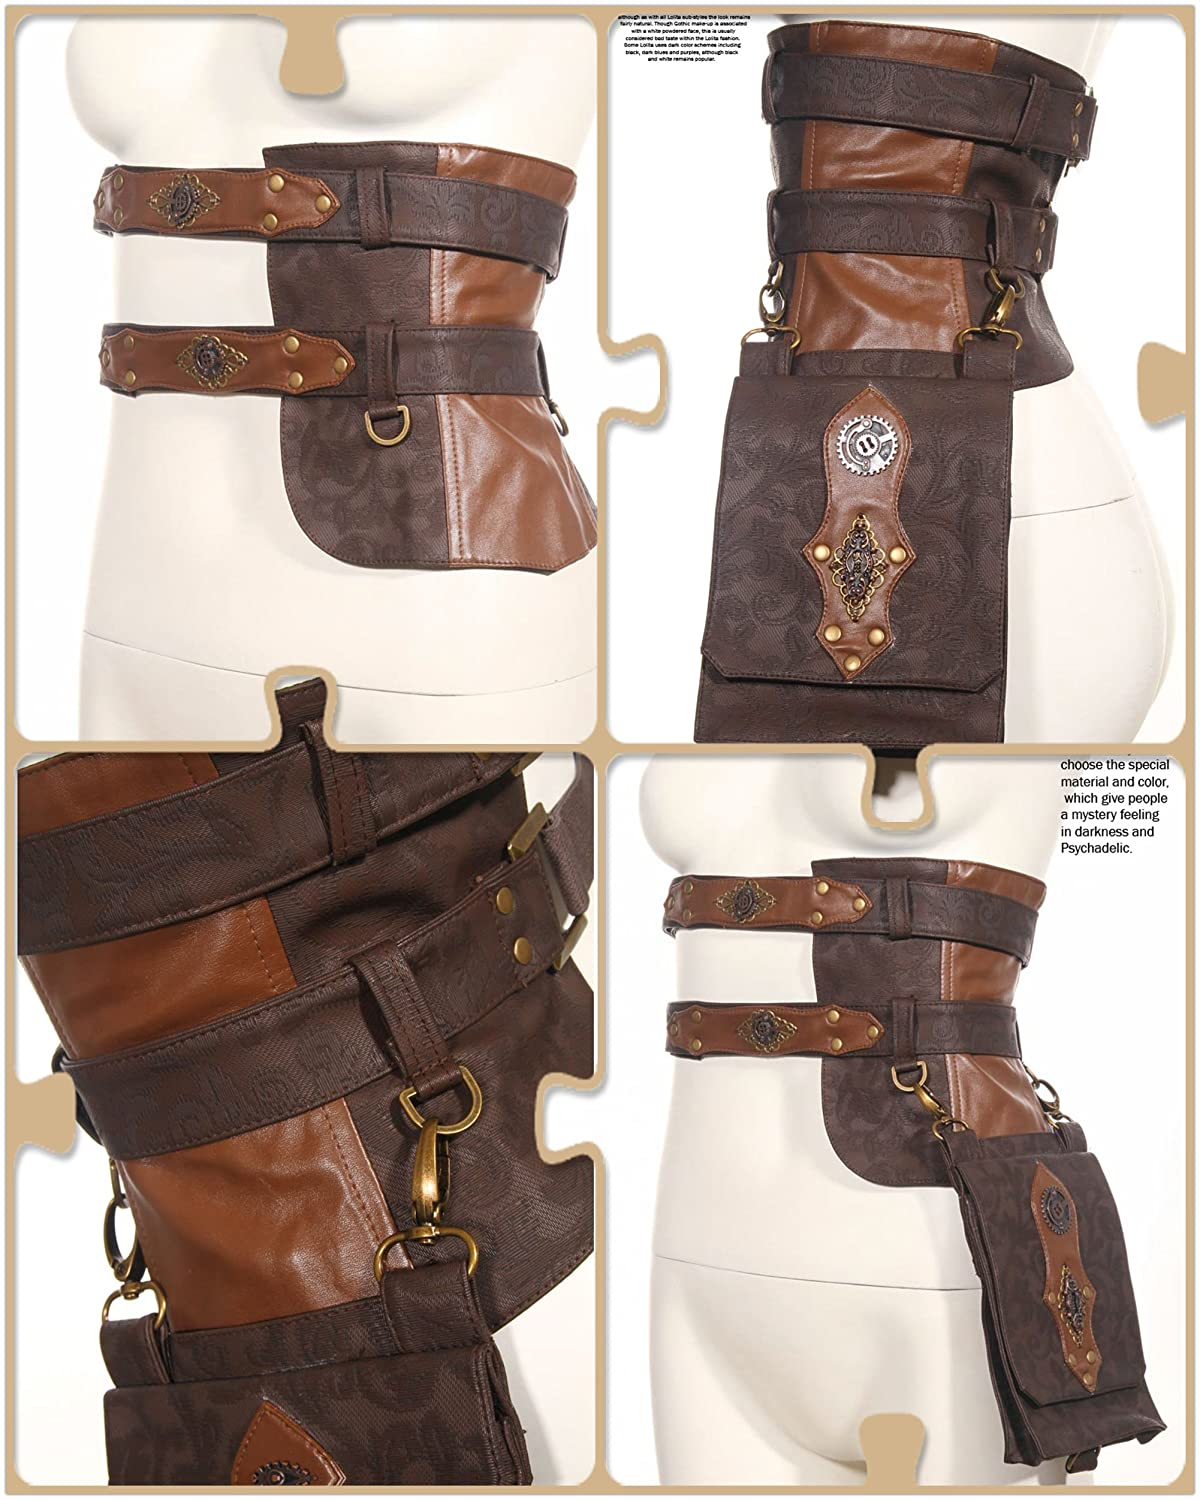 Vintage Inspired Wedding Dress | Vintage Style Wedding Dresses Steampunk Cosplay Steam Punk Clothing Leather Utility Belt Girls Messenger Bags $52.22 AT vintagedancer.com